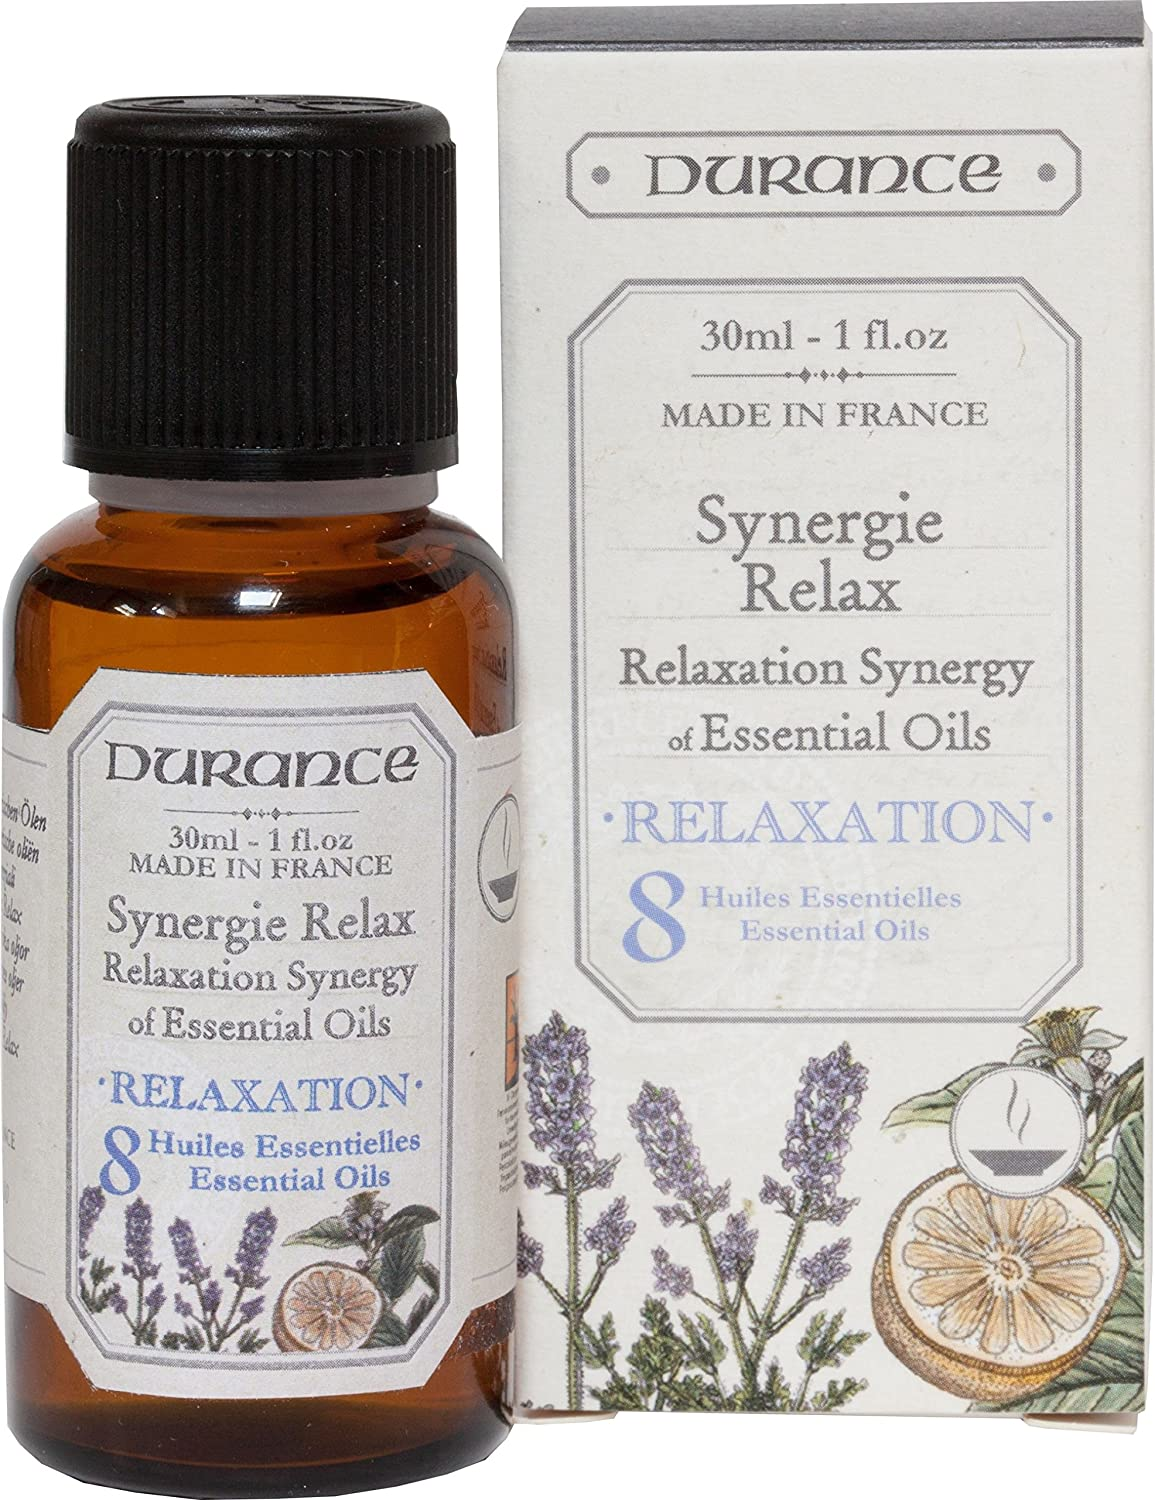 durance - Synergie Relax